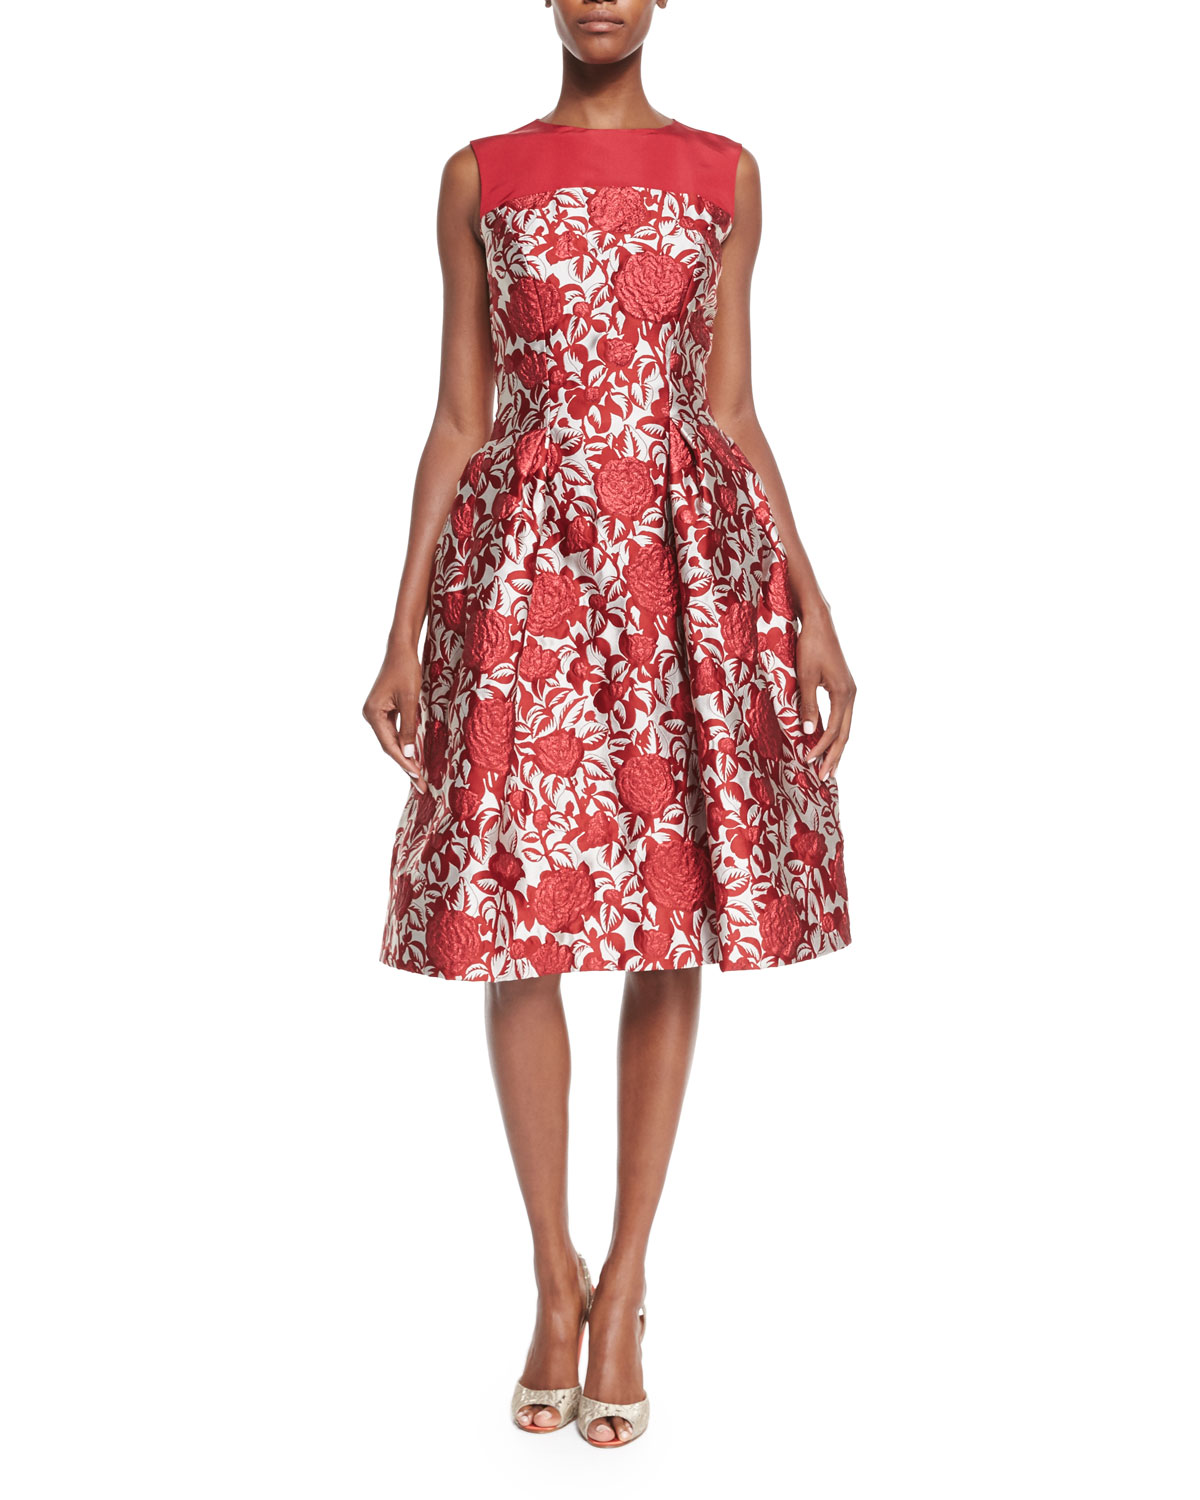 Fit-&-Flare Rose-Print Cocktail Dress, Red Rose/White